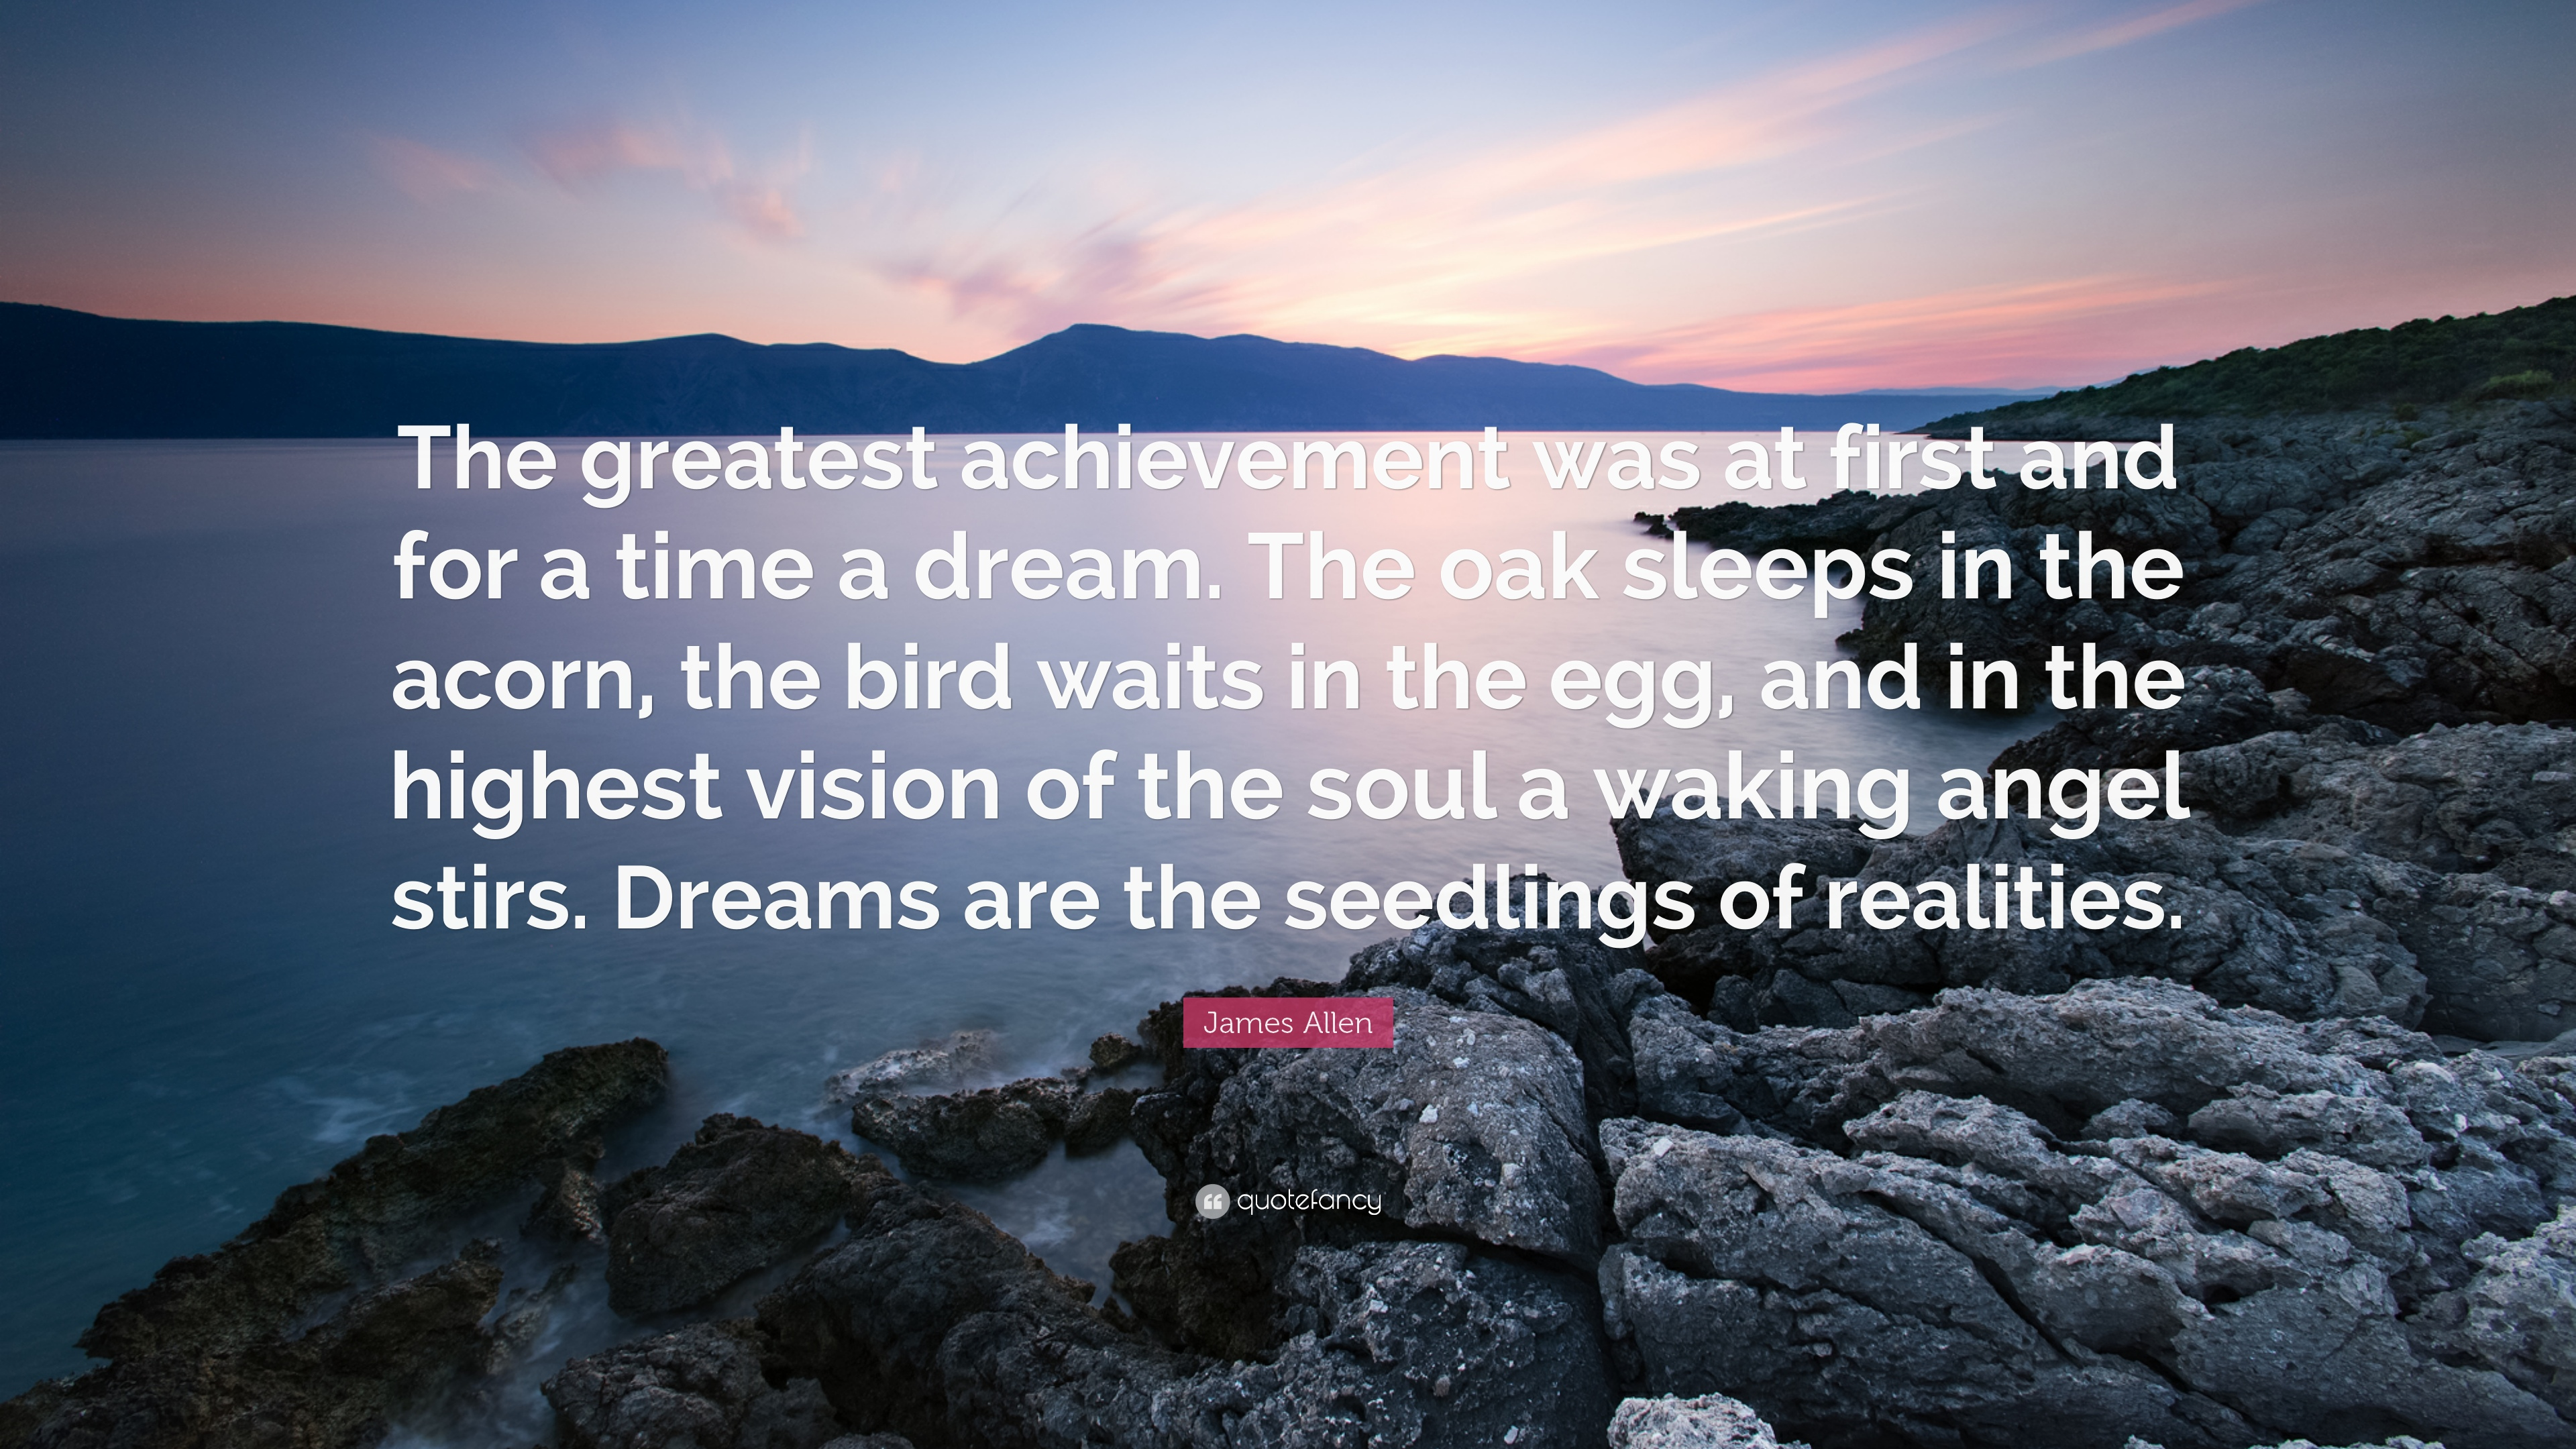 jim goodwin achievement of dreams If you want to make your dreams come true, the first thing you have to do is wake up jm power  jim goodwin the vision must be followed by the venture it is not enough to stare up the steps - we must step up the stairs  part of the issue of achievement is to be able to set realistic goals, but that's one of the hardest things to do.